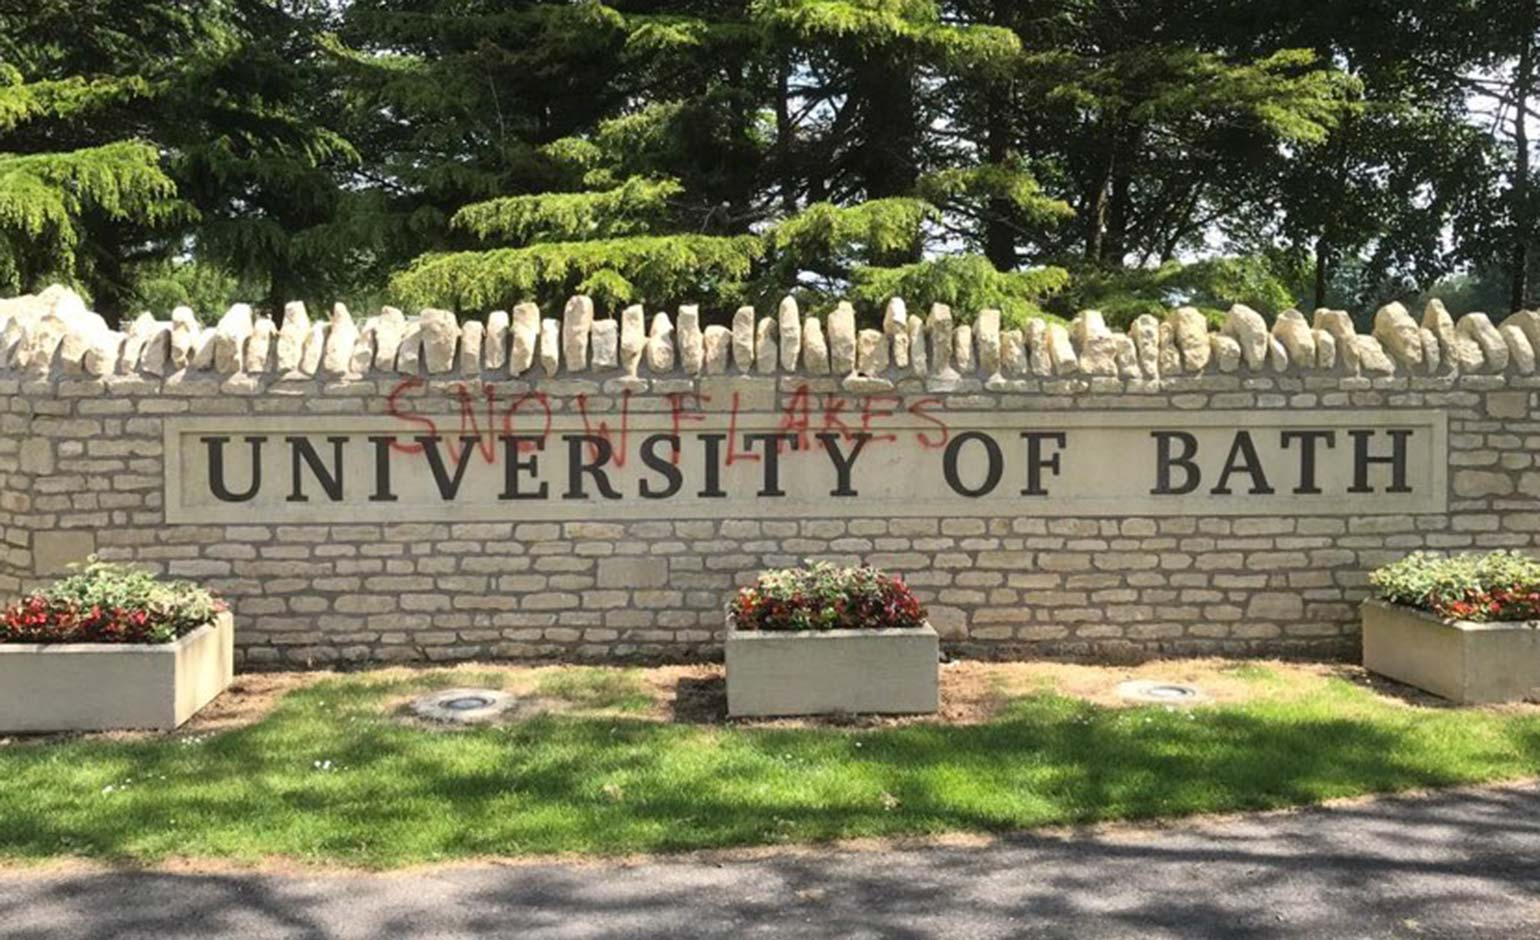 University of Bath 'disappointed' after 'snowflakes' graffitied on entrance sign | Bath Echo